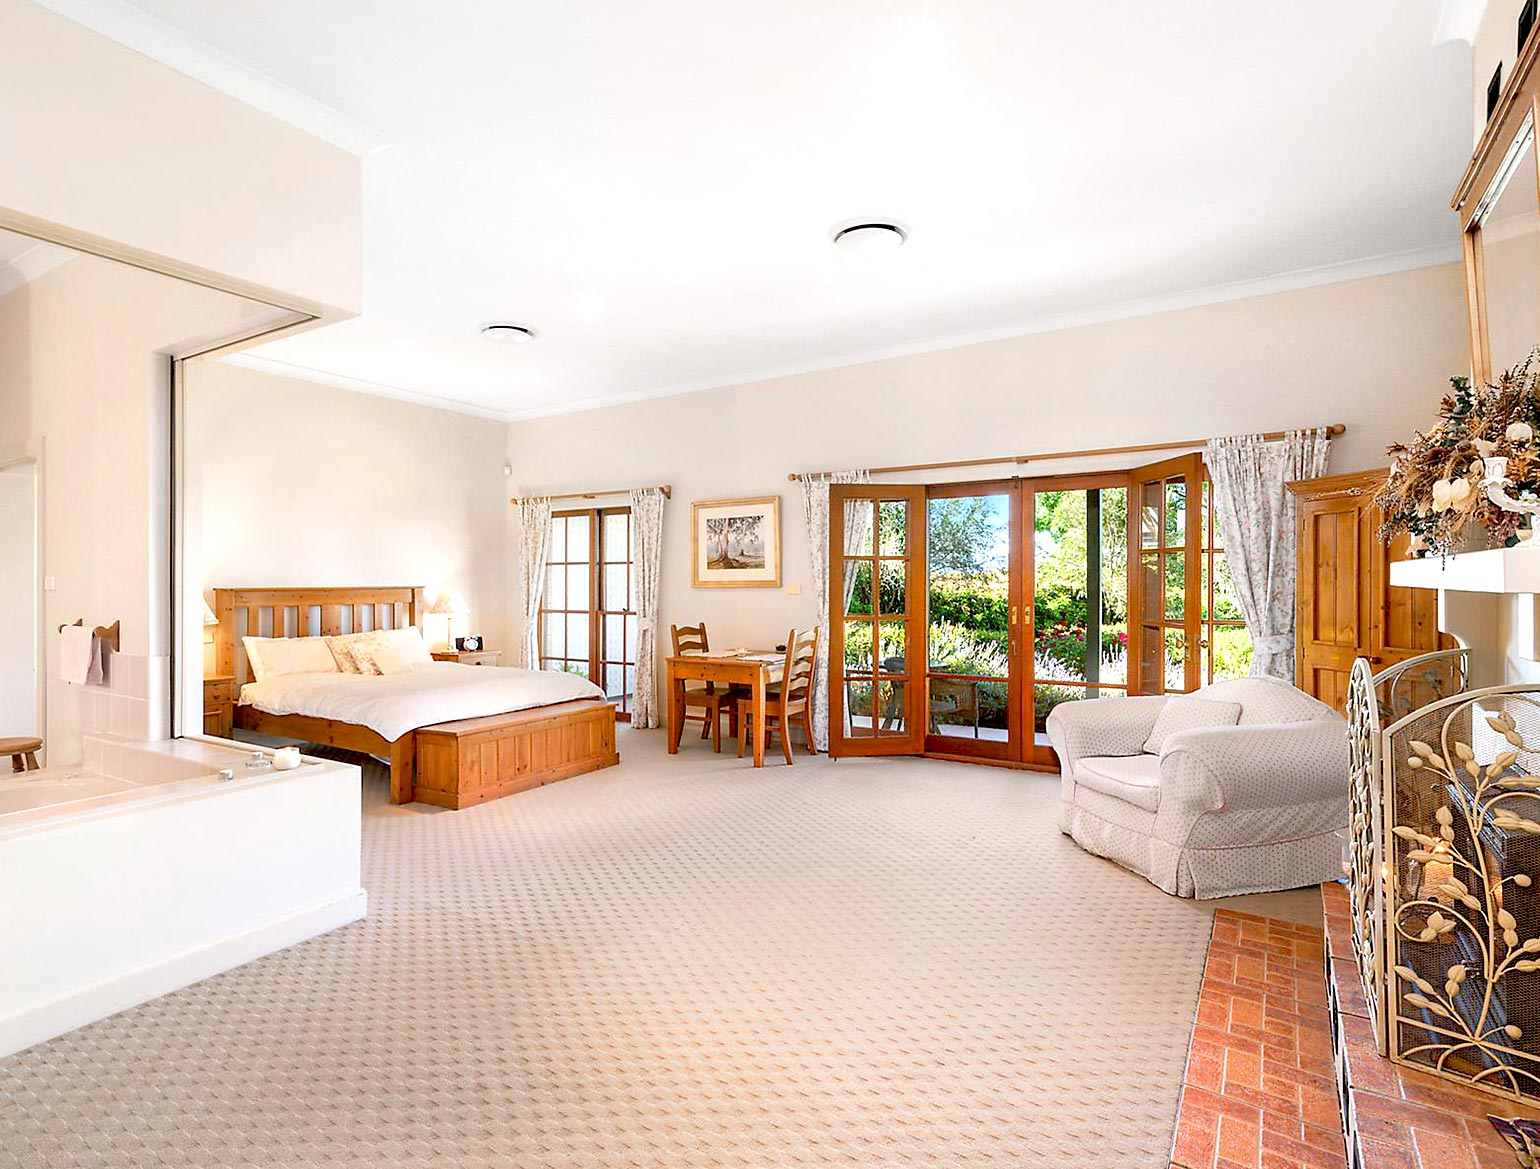 Luxury Accommodation Scone Strathearn Park Lodge